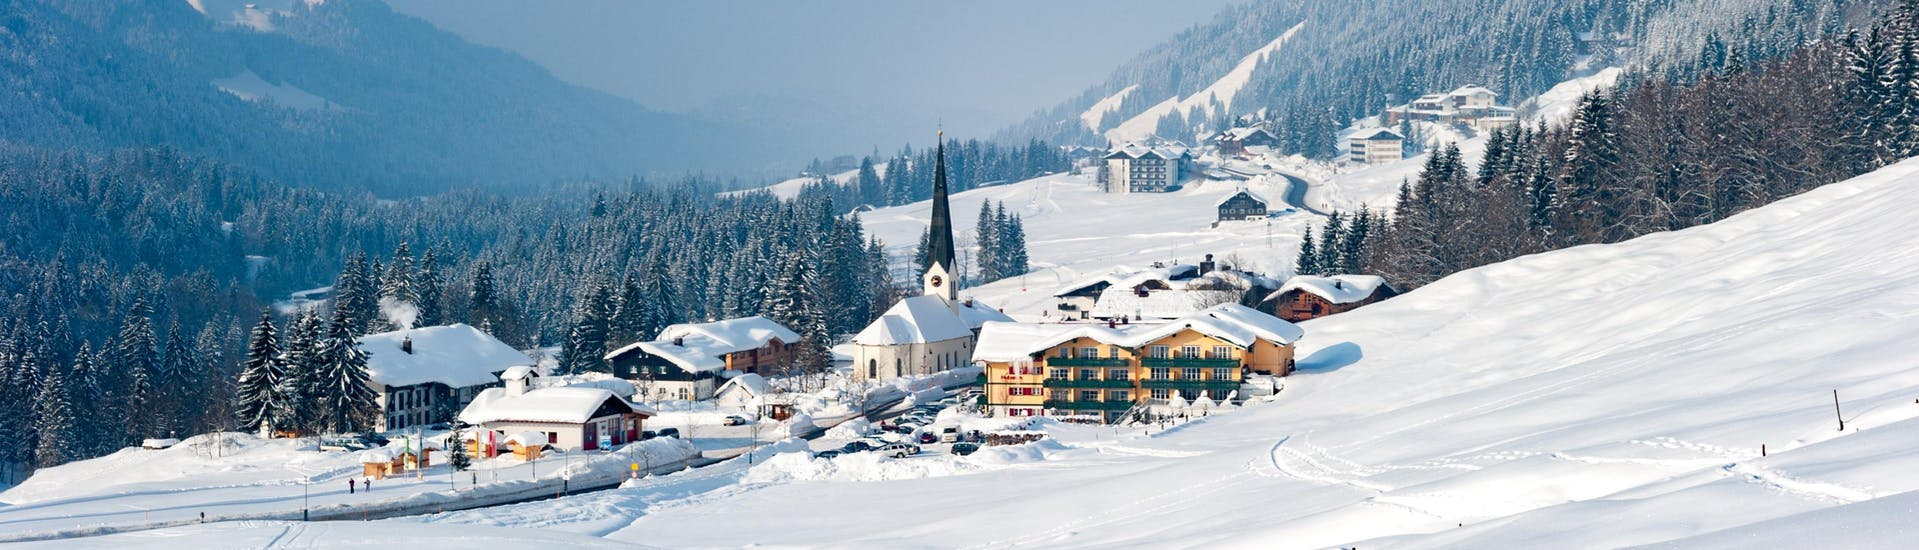 An image of the dreamy little Bavarian village of Baldersachwang in winter, a popular ski resort in which visitors can book ski lessons with one of the local ski schools.